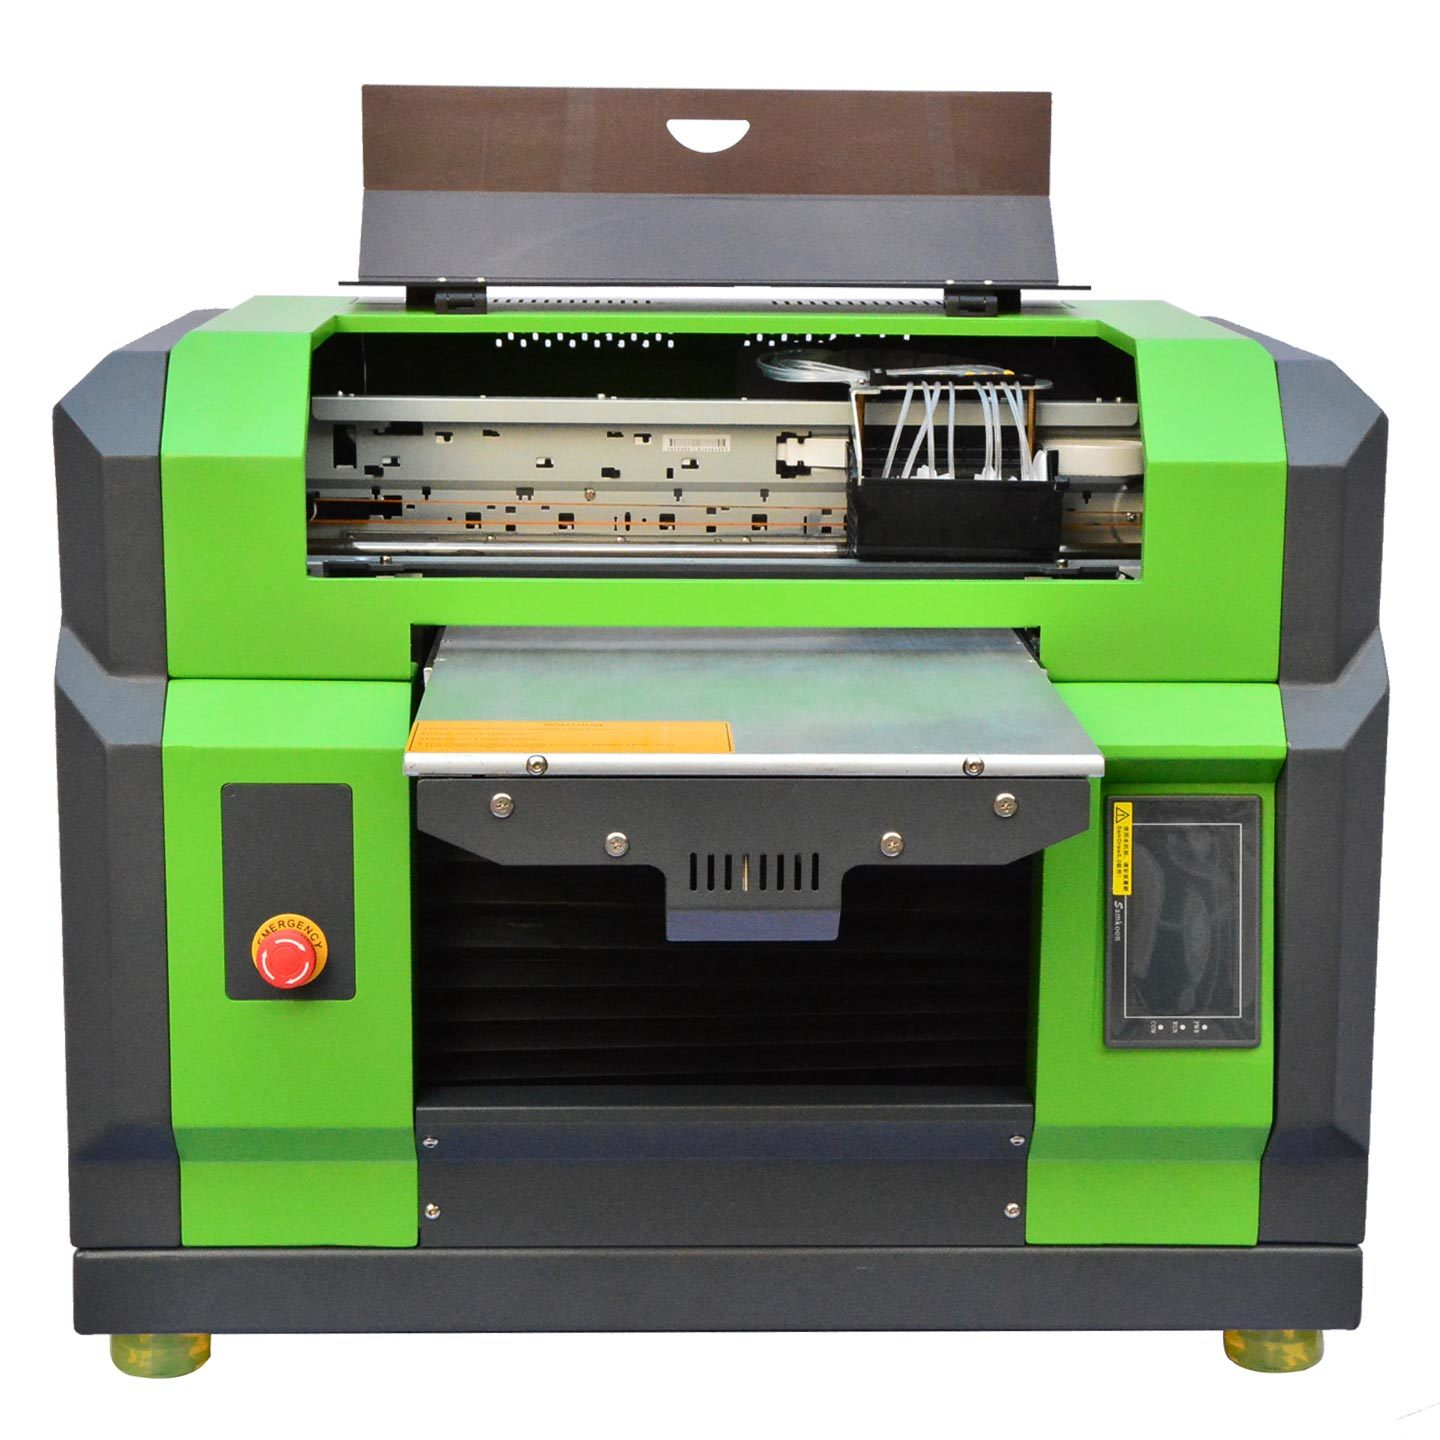 High Quality Multi-Function A3 UV Flatbed Printer for T-Shirt, CD, Card, Pen, Golf Ball, Phone Case, USB, Glass, Plastics, Acrylic, PVC, Leather, Marble, etc.